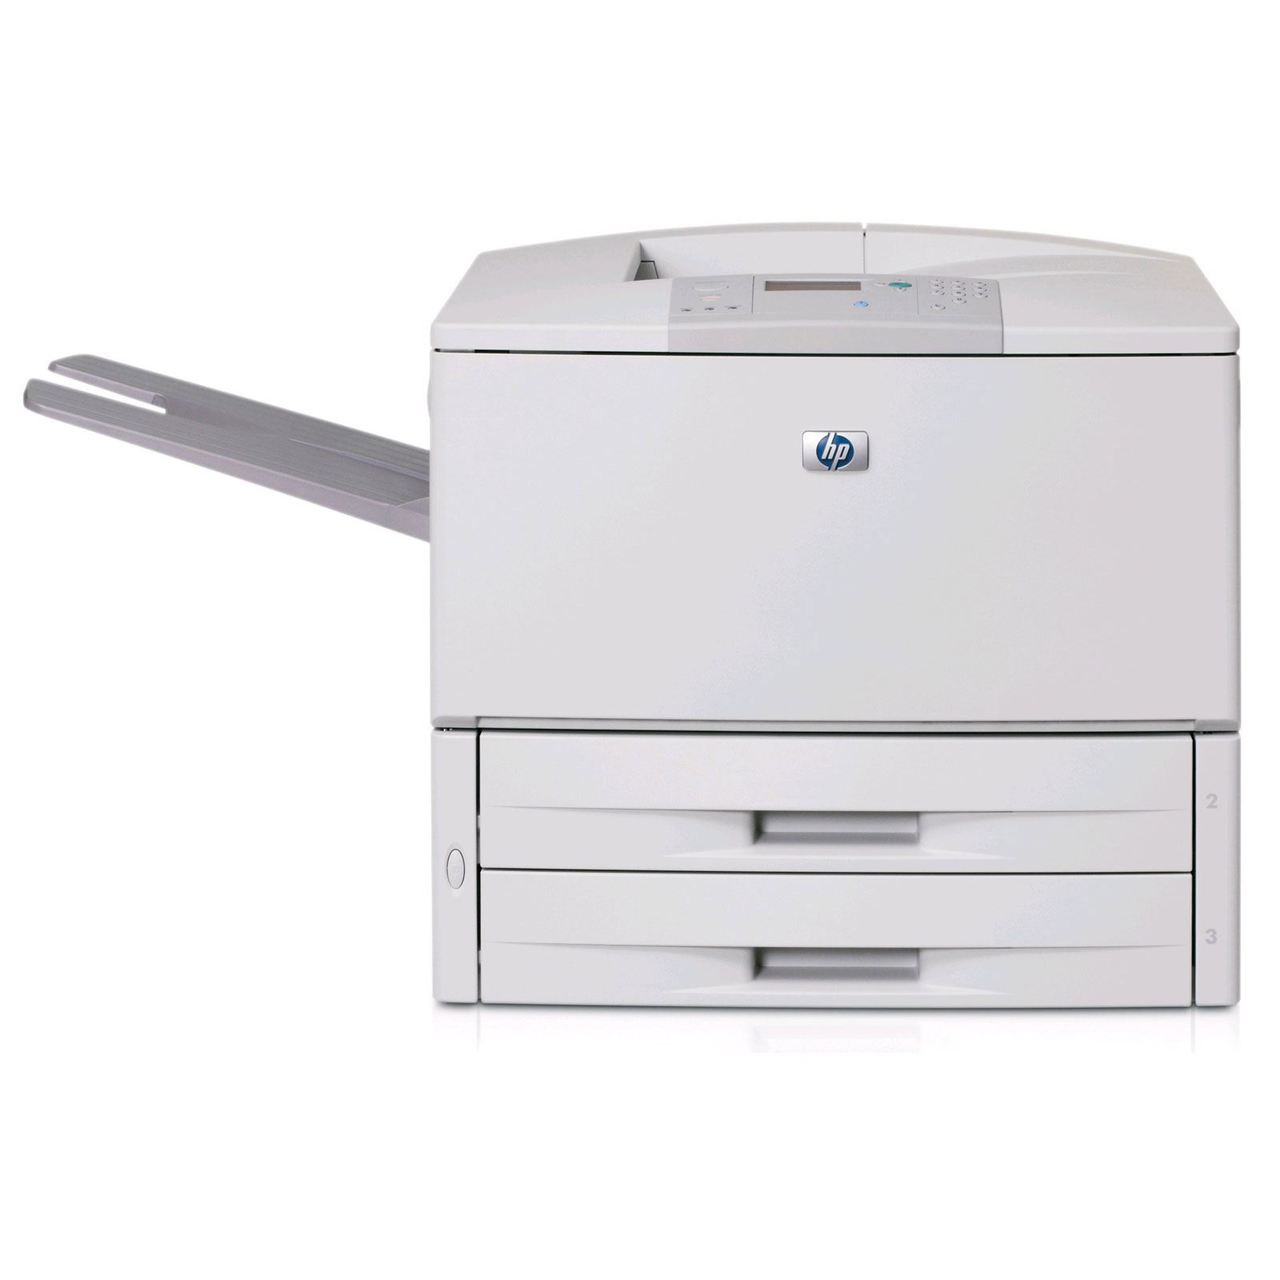 HP LaserJet 9040DN - Q7699A - HP Laser Printer for sale